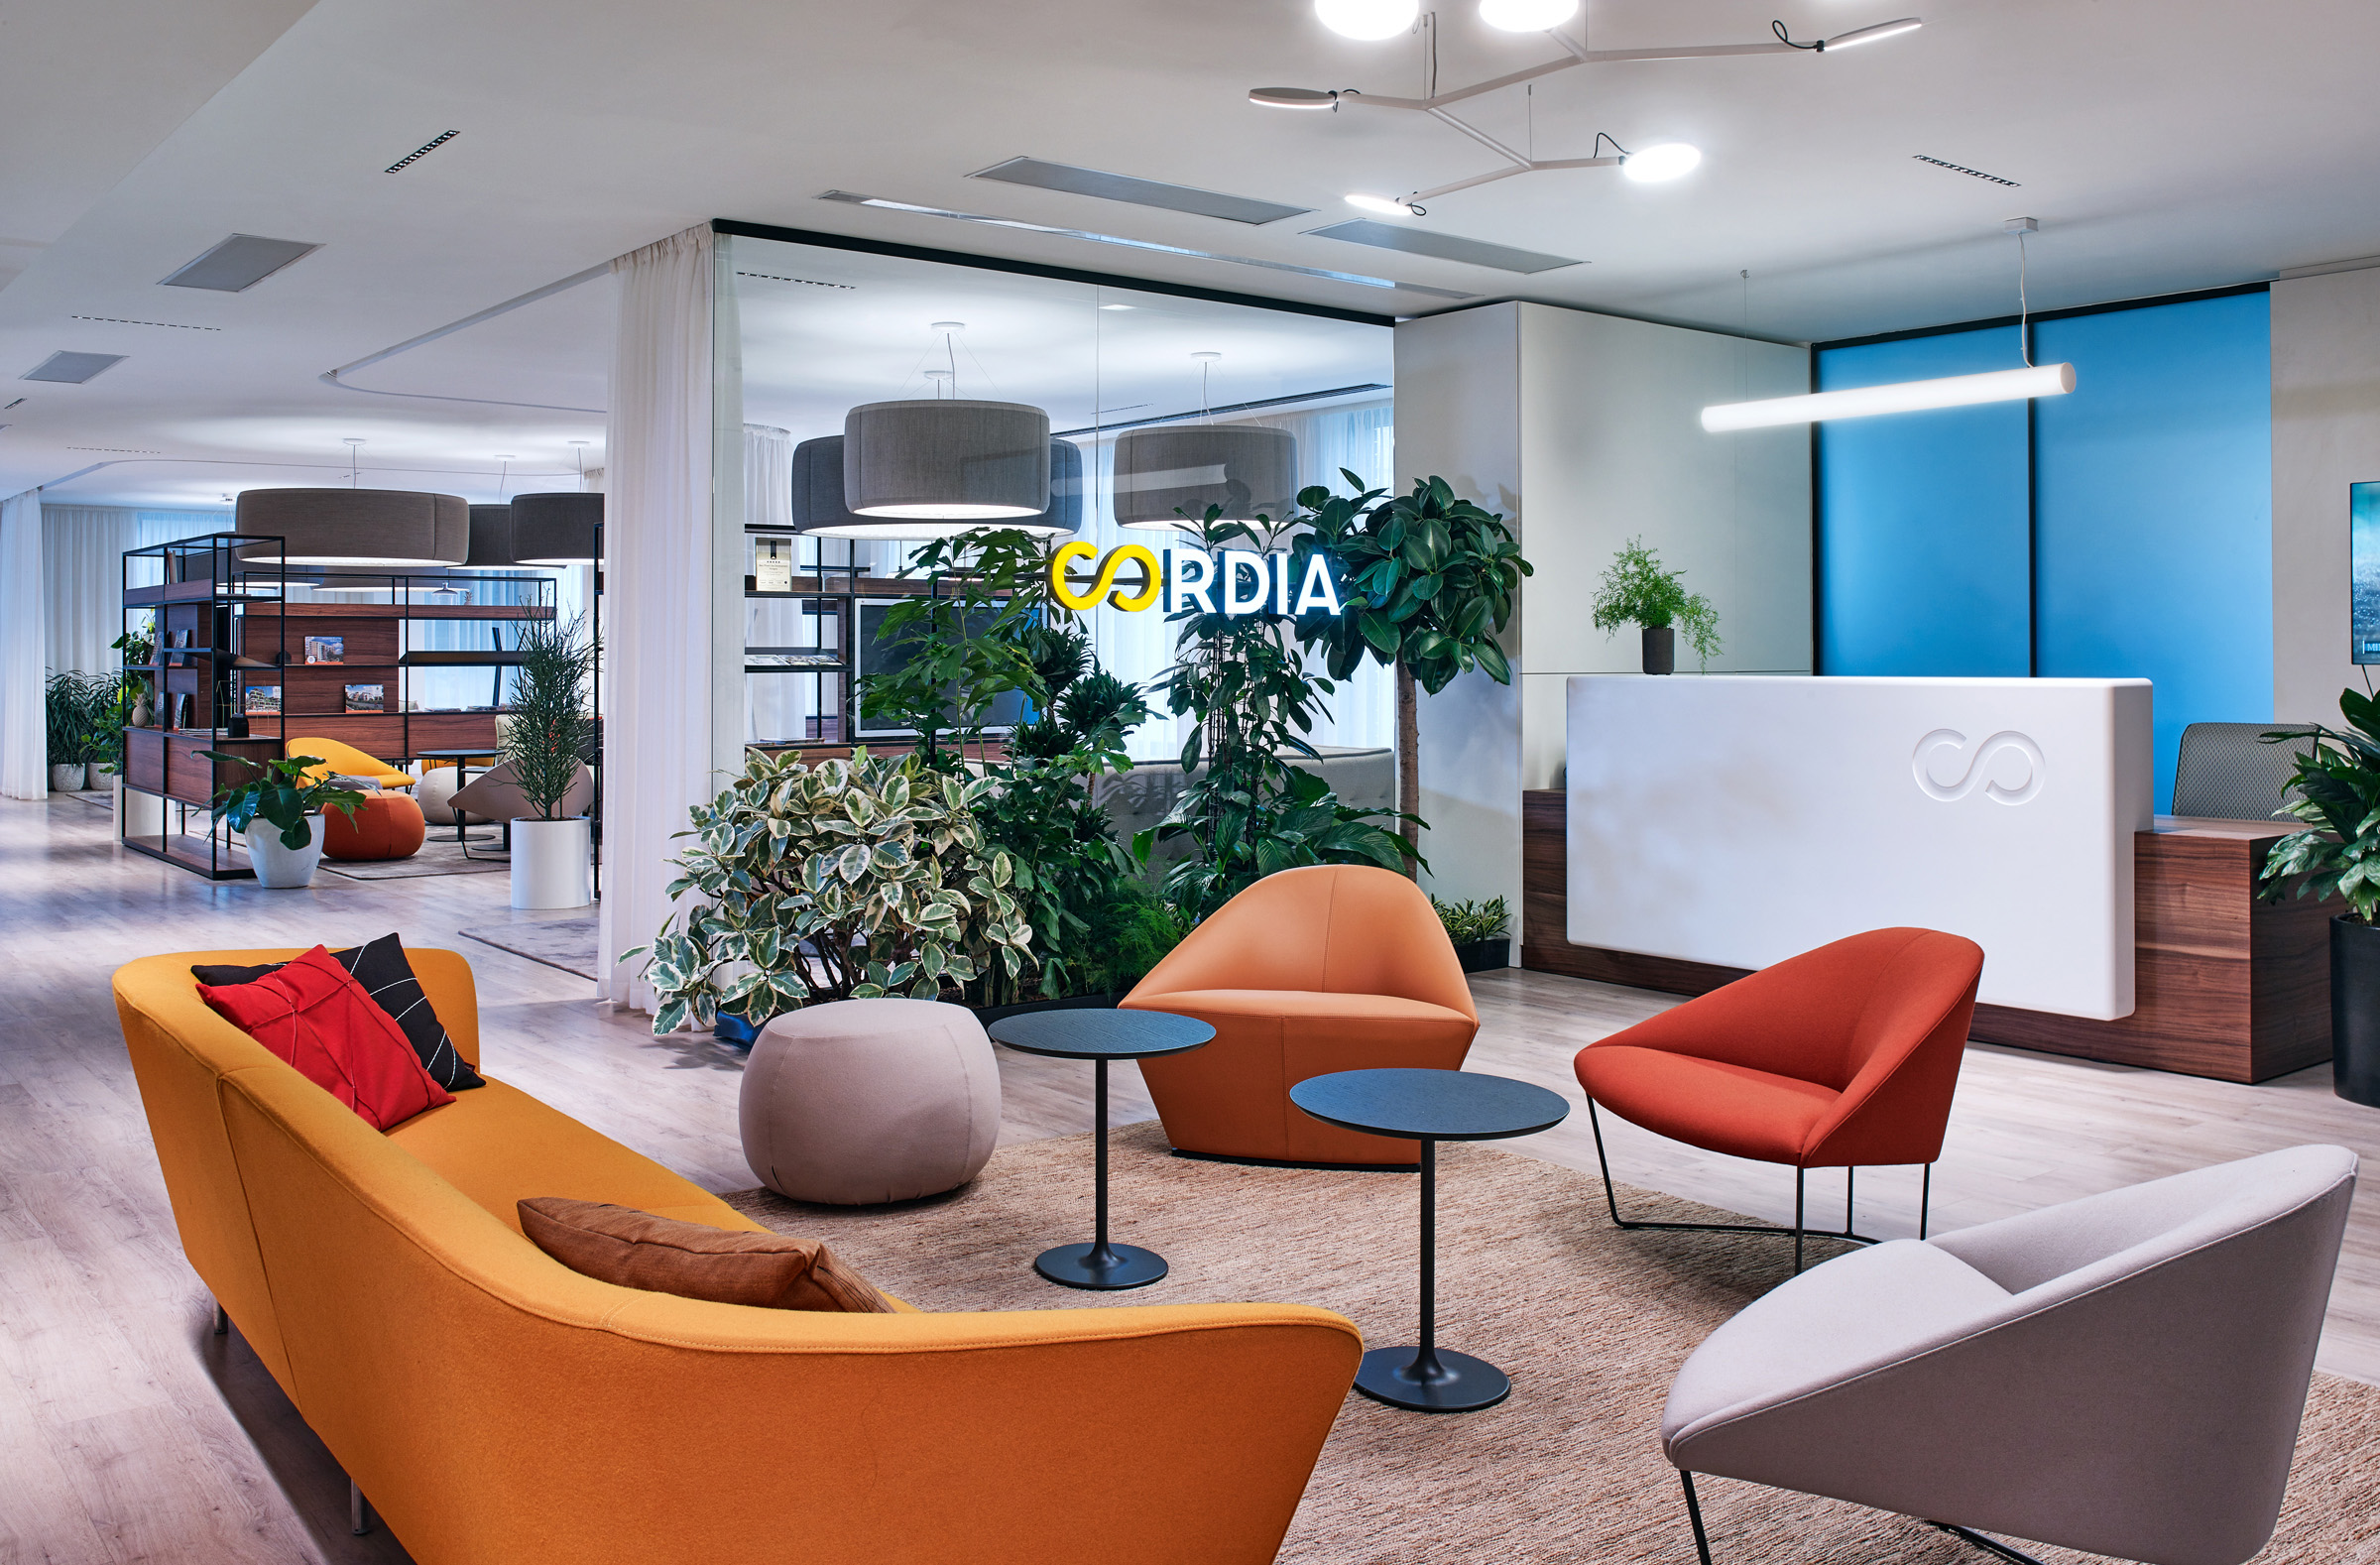 A Look Inside Cordia's Marketing Office in Budapest